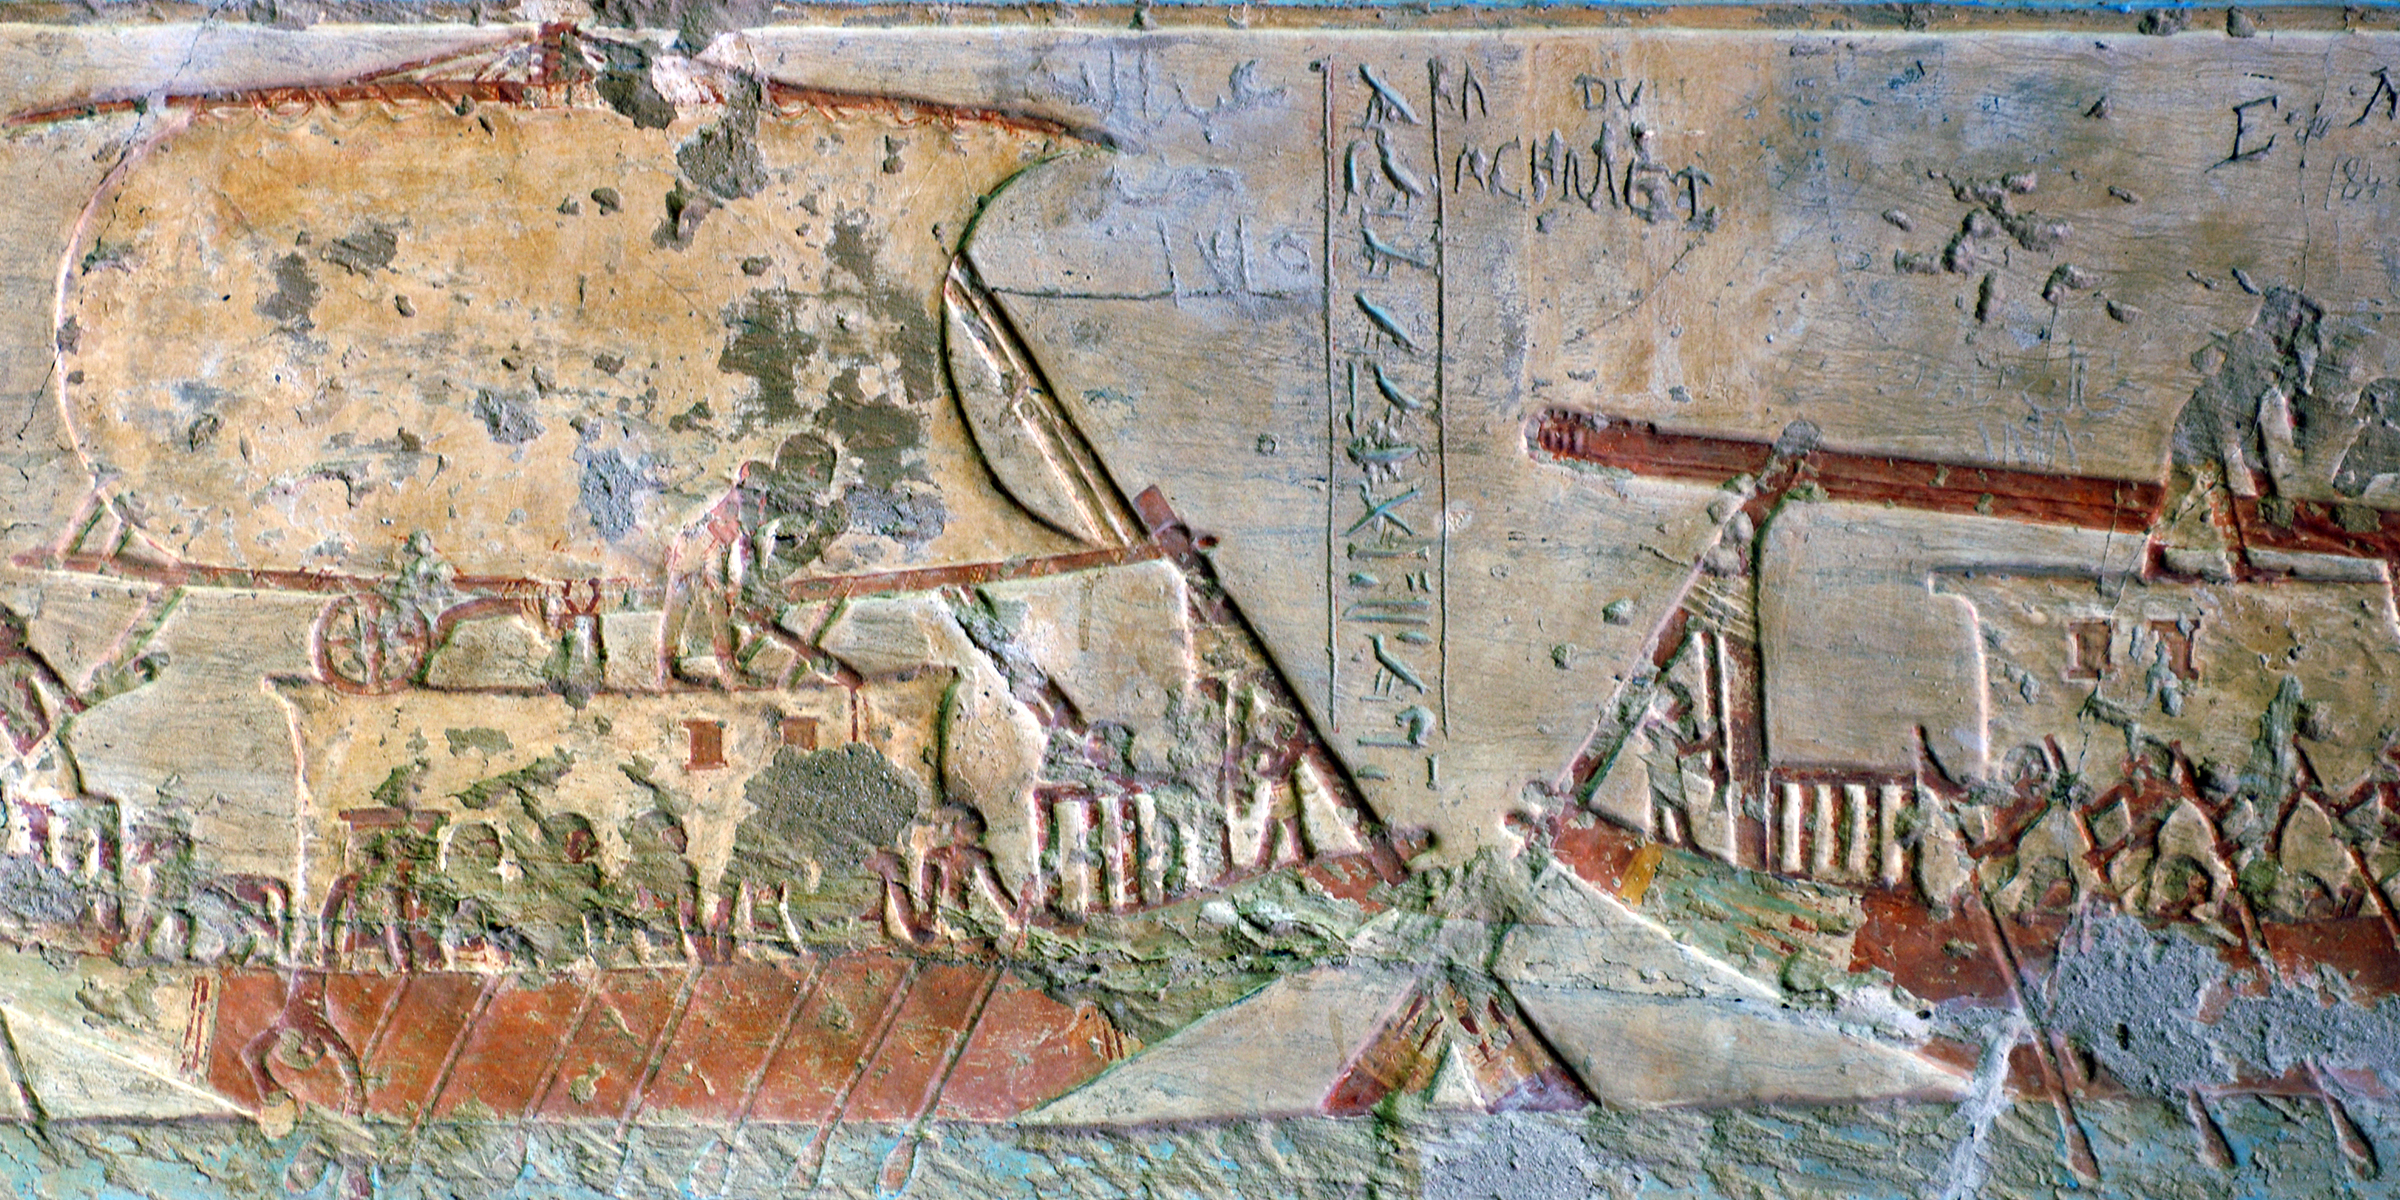 Ships loaded with grain, frieze from the Tomb of Paheri, Egypt, c. 1380 BC. © François Guenet / Art Resource, NY.